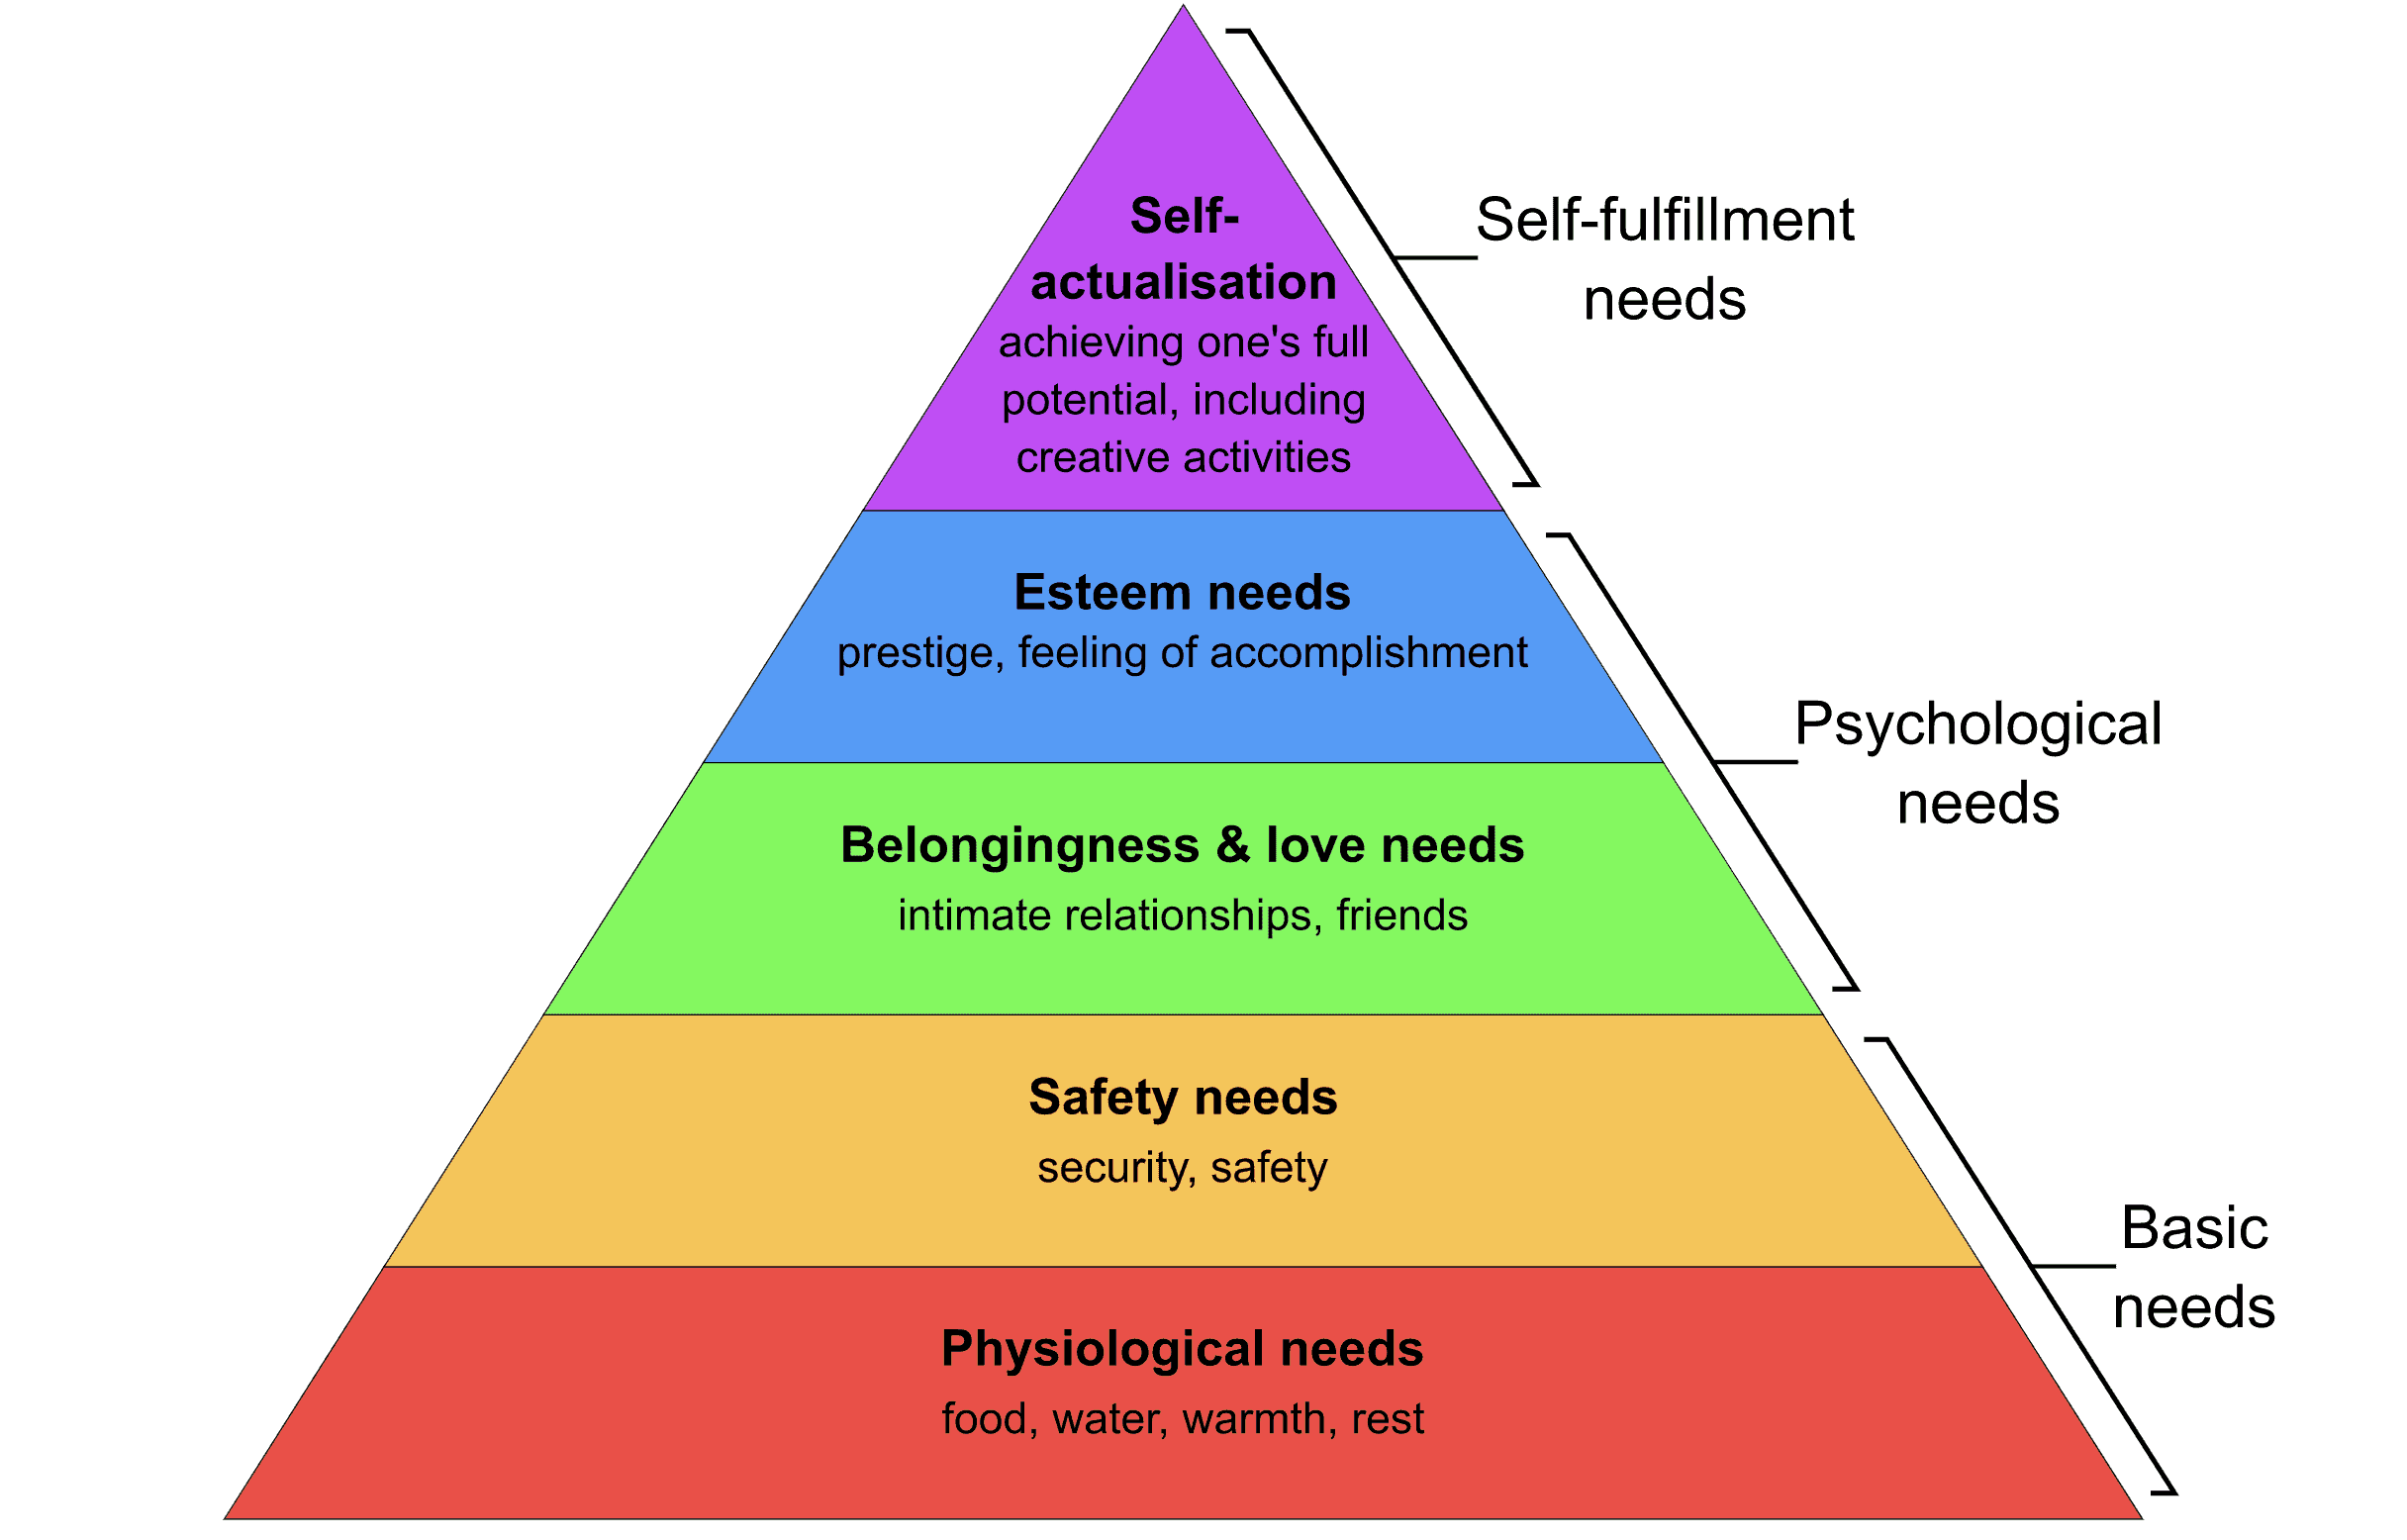 [enabler images to see the Maslow's Hierarchy of Needs triangle]